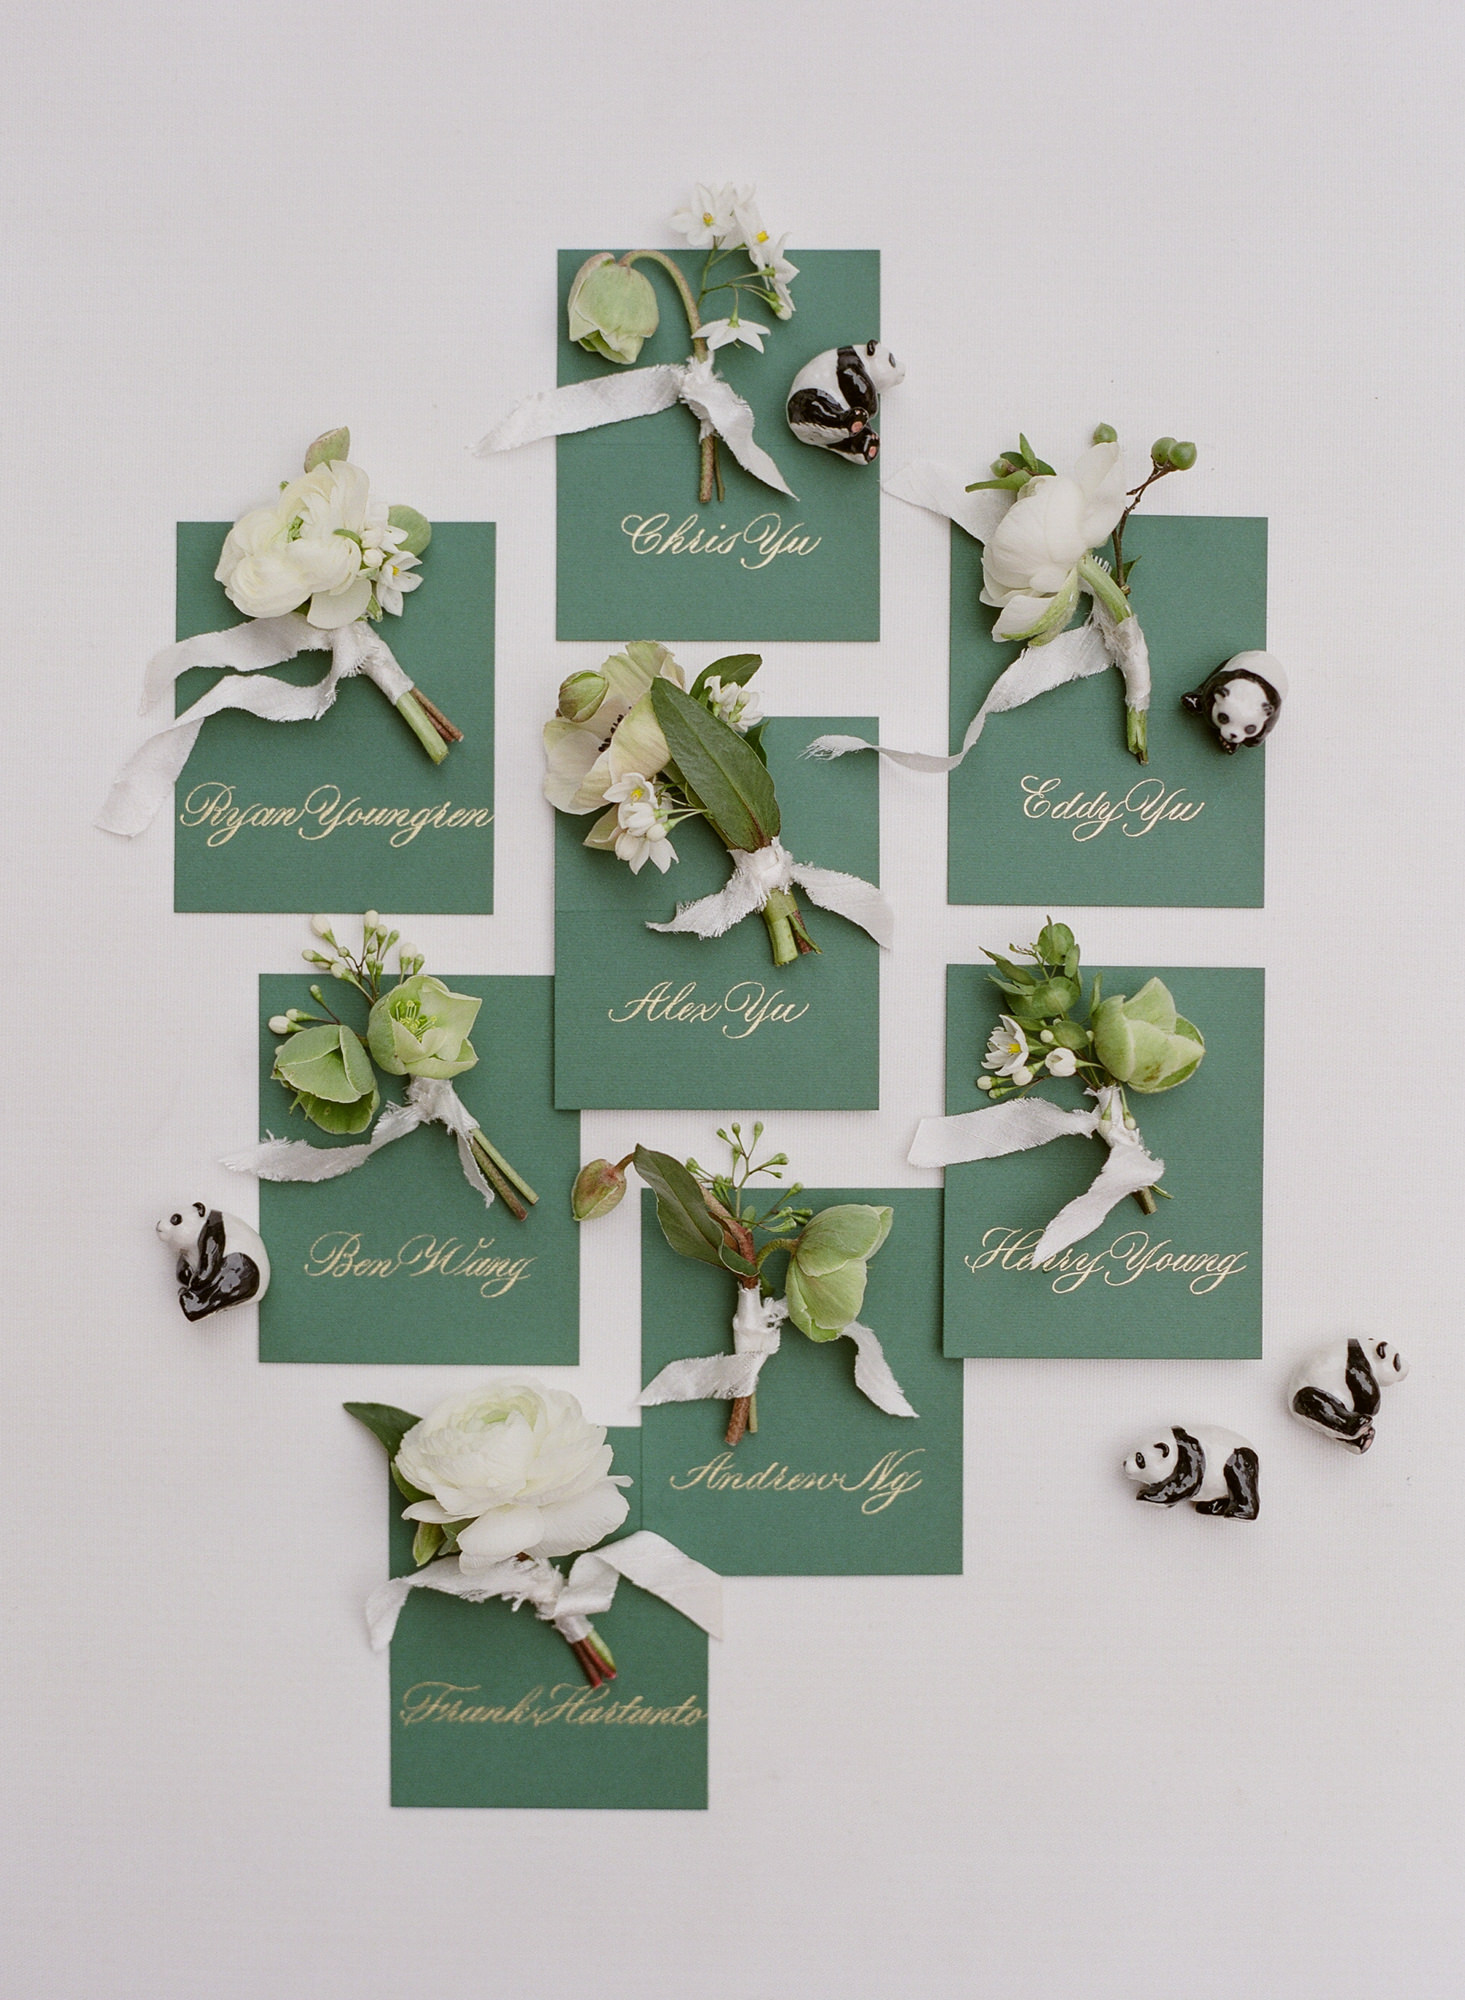 White floral boutonnieres with rannuculus and lillies - photo by Greg Finck - France